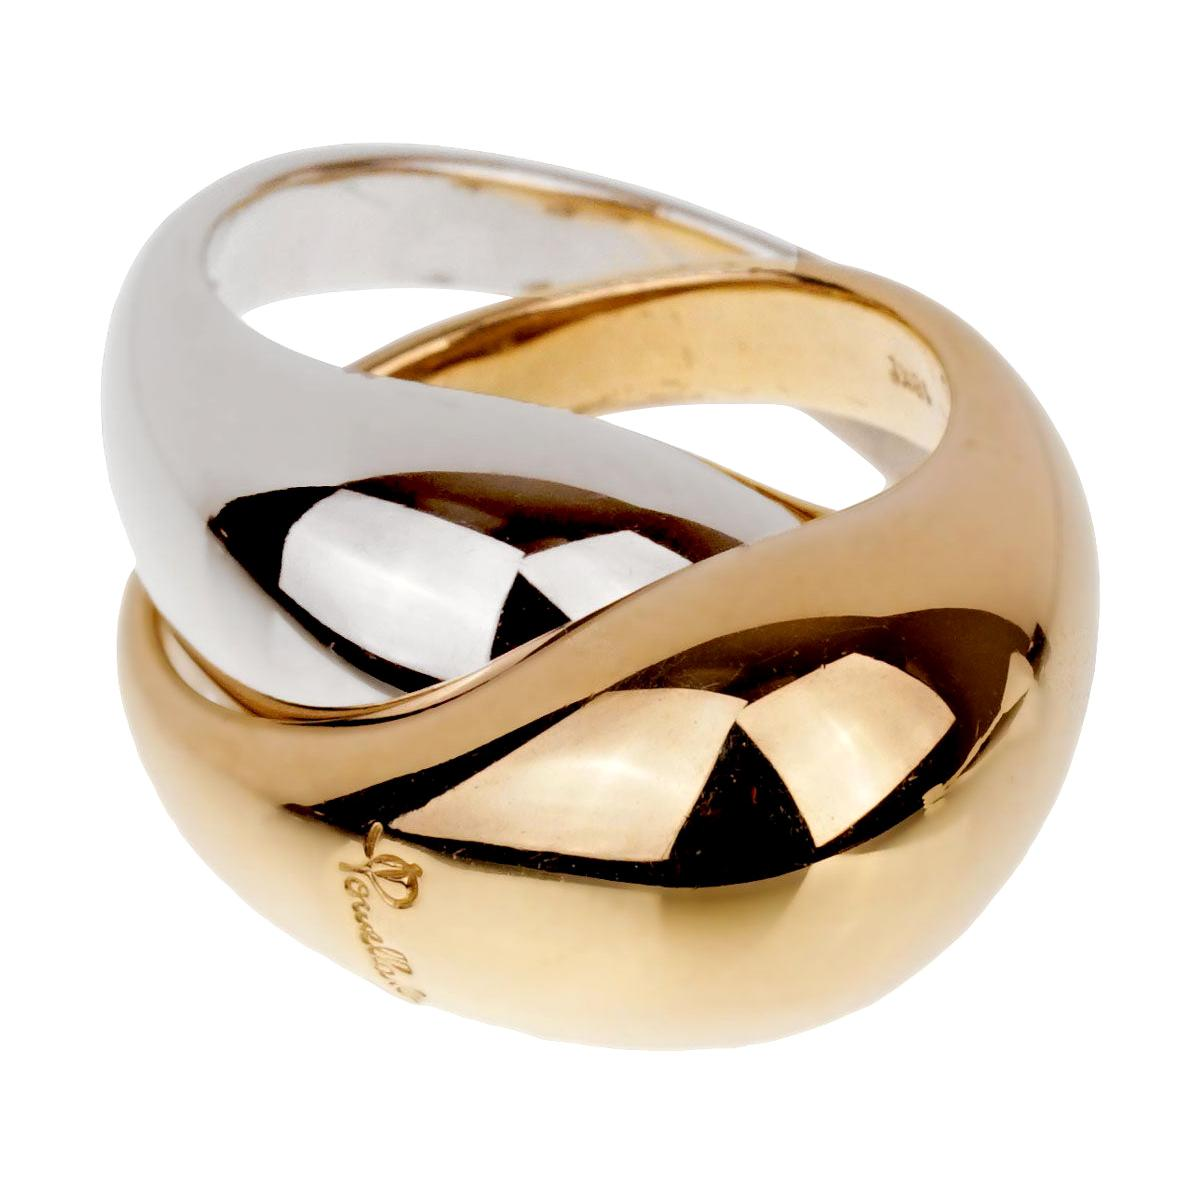 Pomellato White and Yellow Gold Cocktail Dome Ring